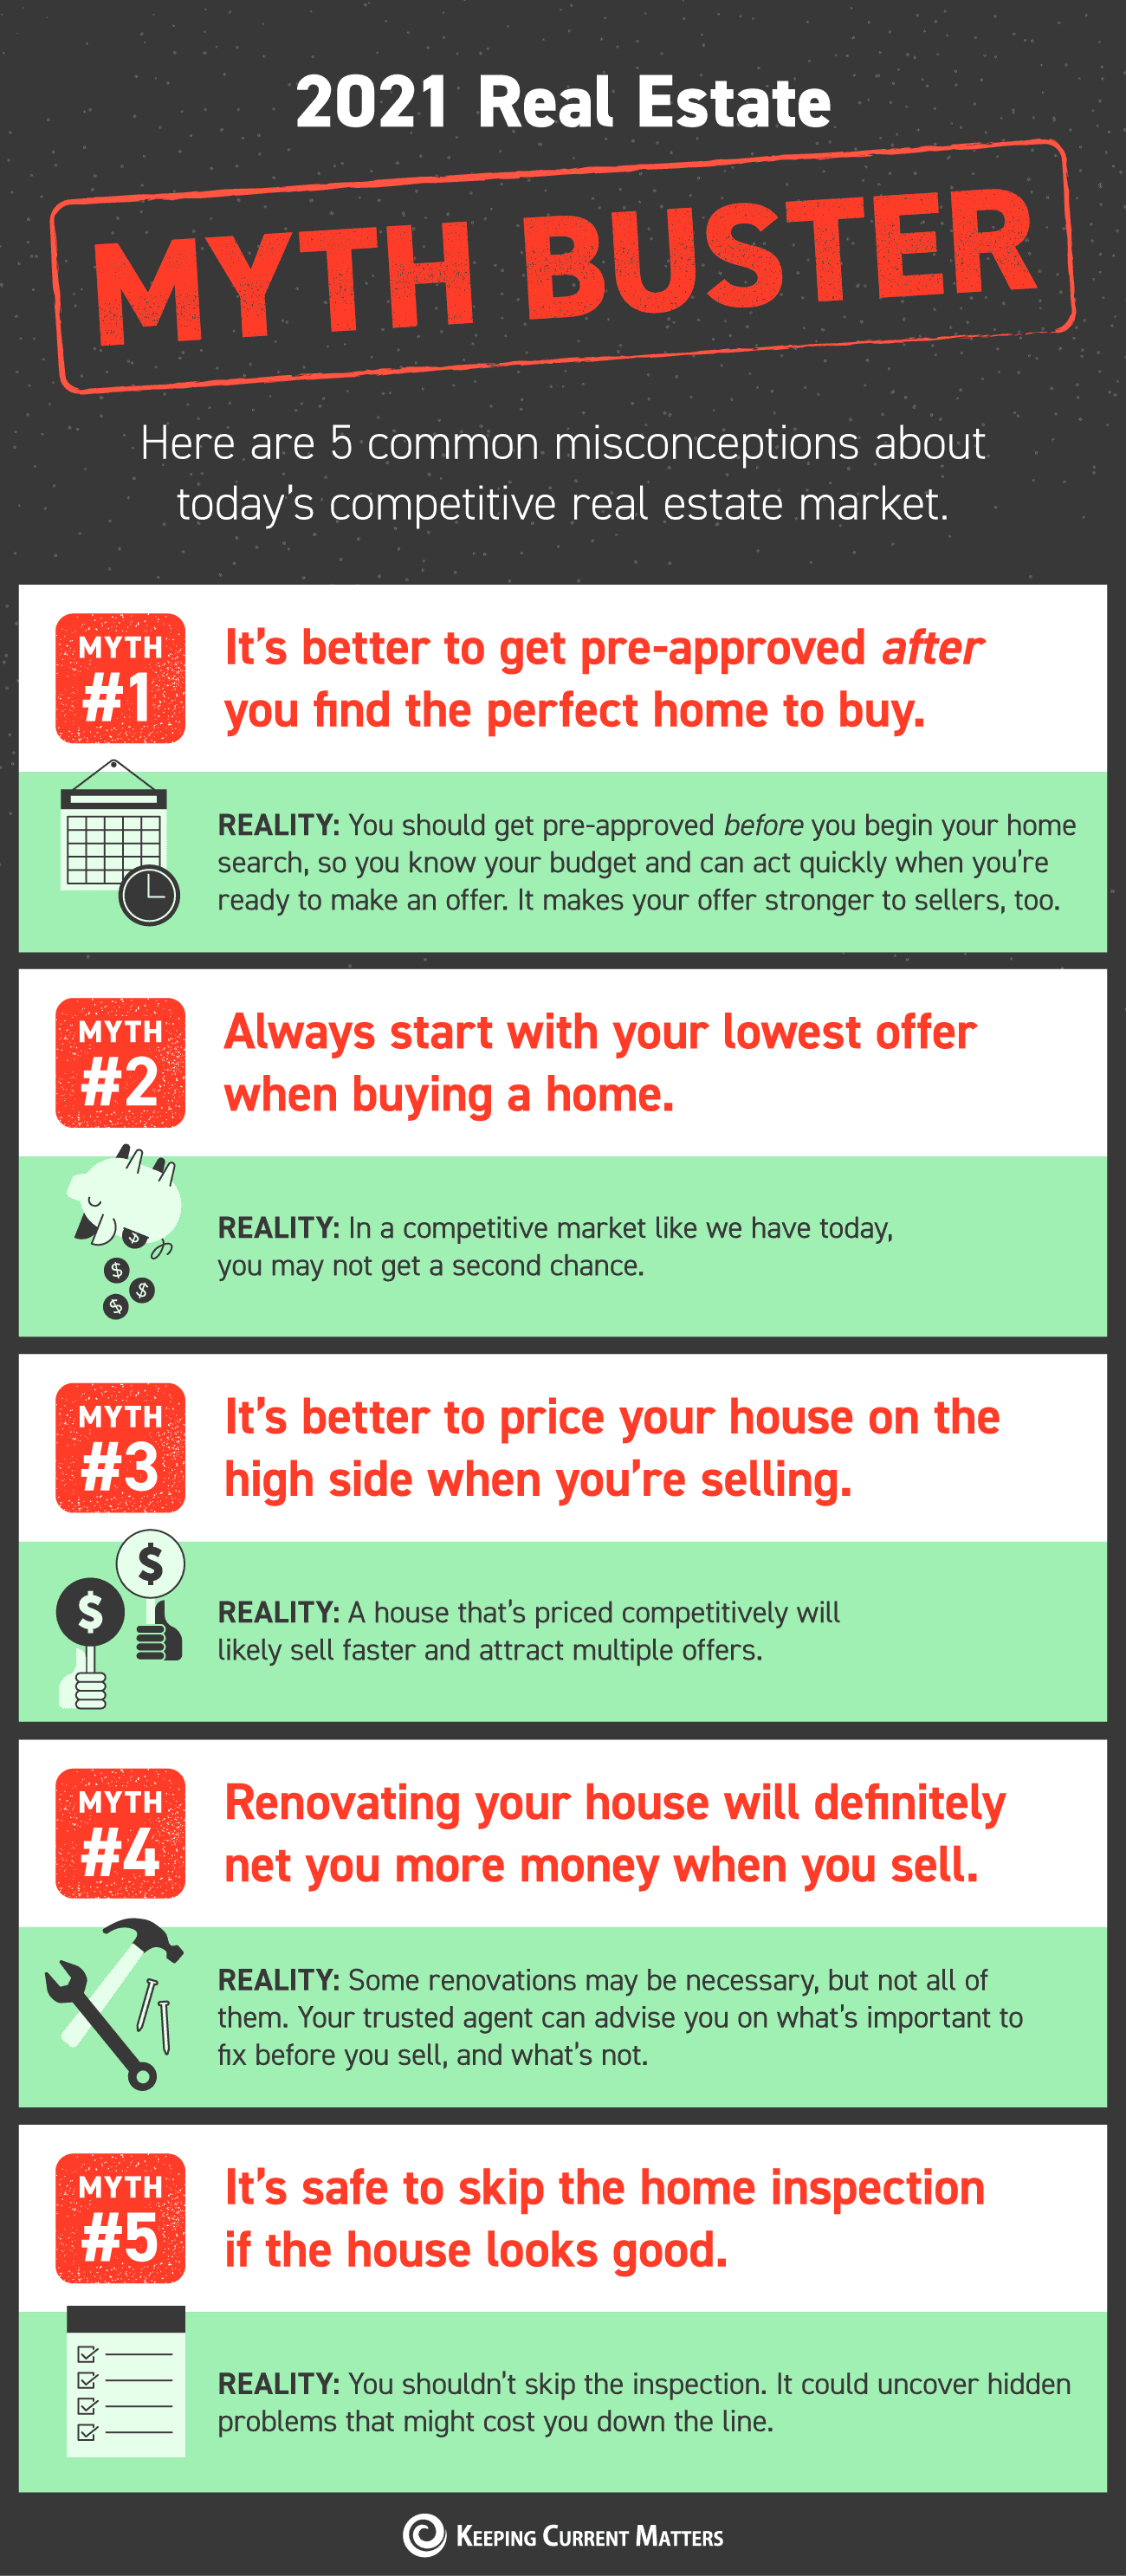 2021 Real Estate Myth Buster [INFOGRAPHIC] | Keeping Current Matters